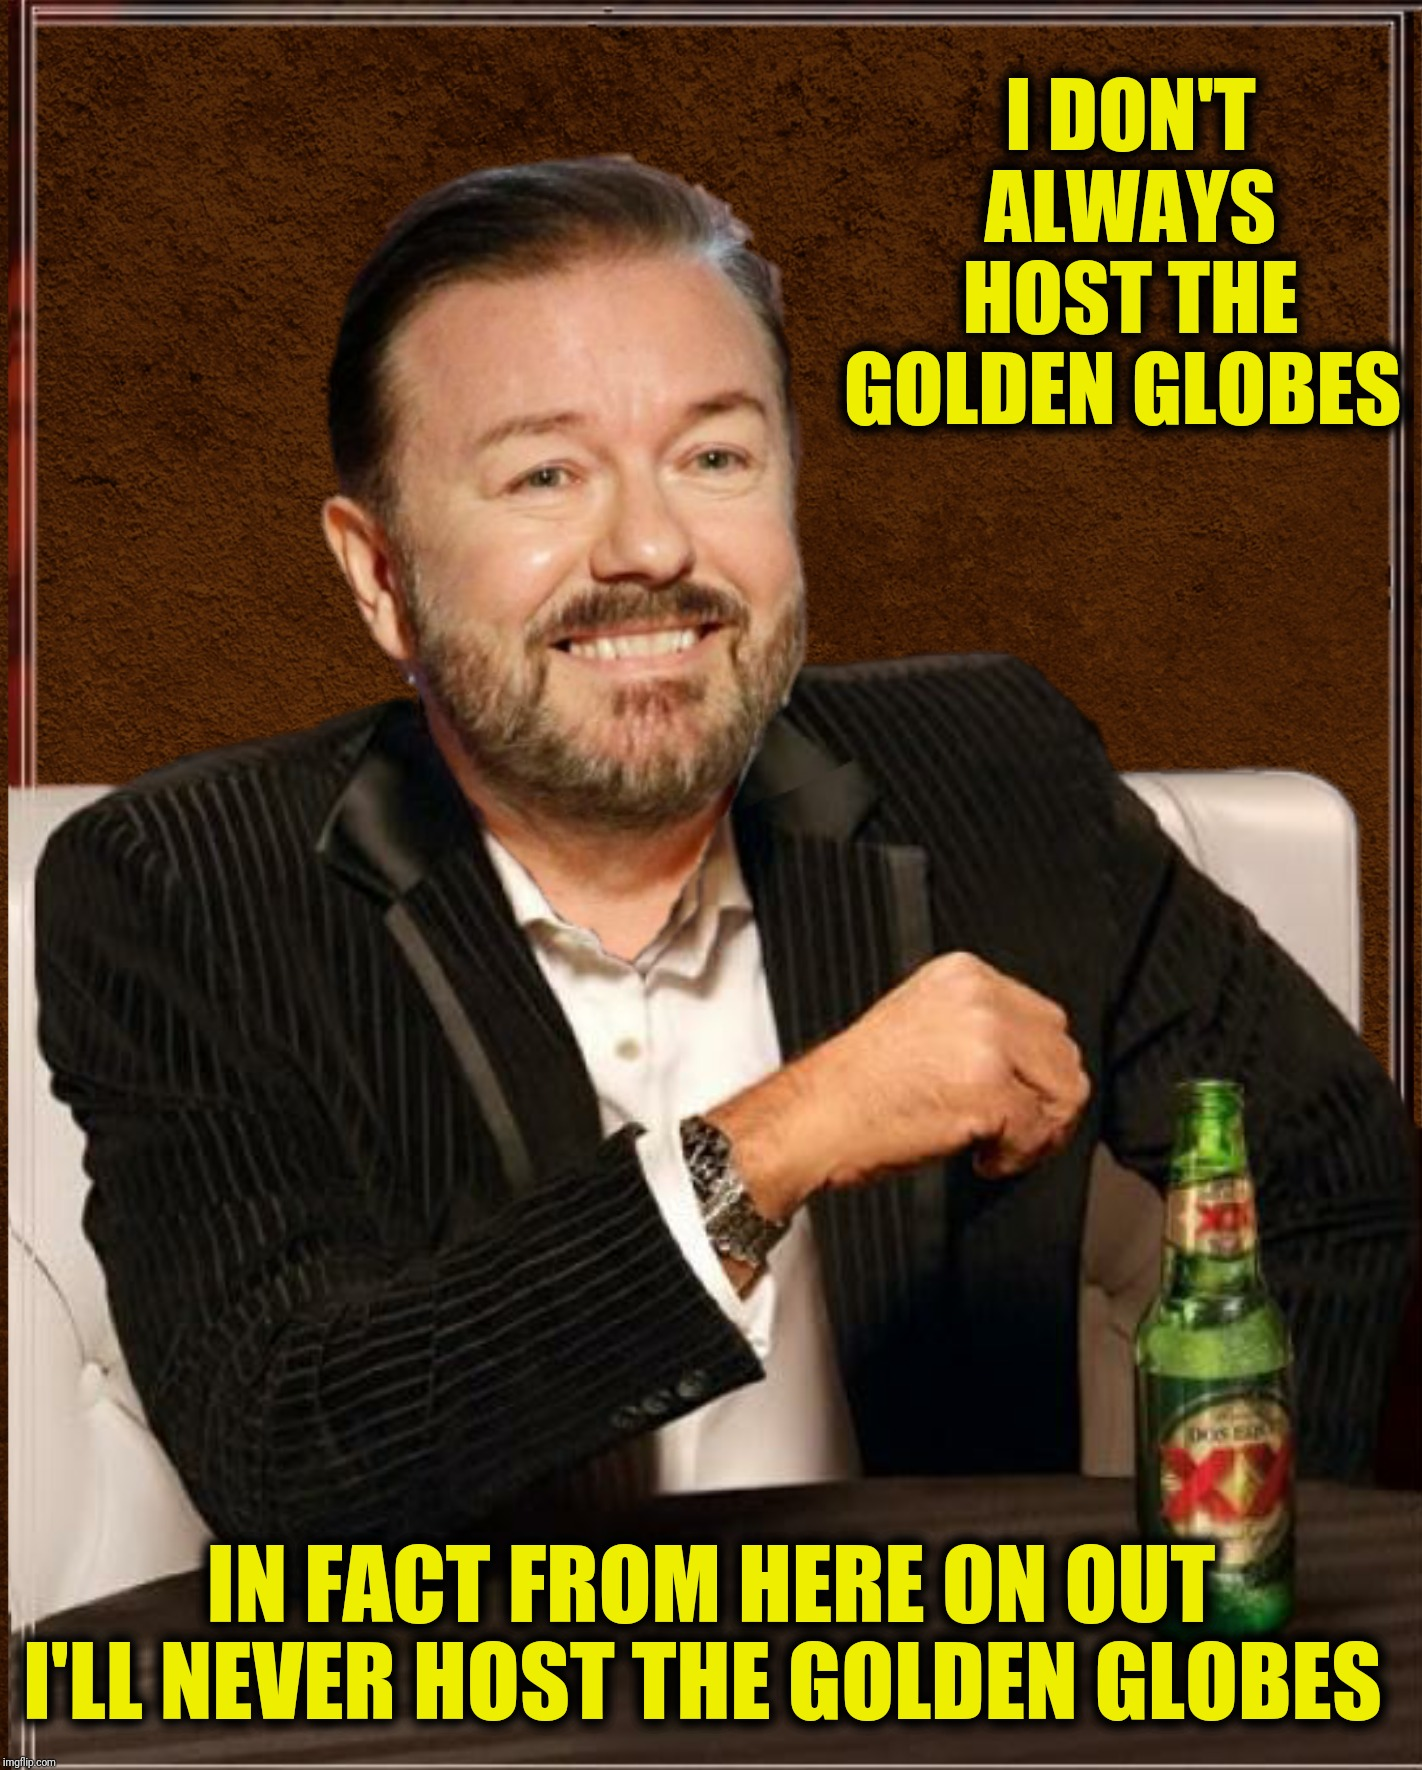 The most interesting monologue in the world | I DON'T ALWAYS HOST THE GOLDEN GLOBES IN FACT FROM HERE ON OUT I'LL NEVER HOST THE GOLDEN GLOBES | image tagged in bad photoshop,ricky gervais,the most interesting man in the world,golden globes | made w/ Imgflip meme maker